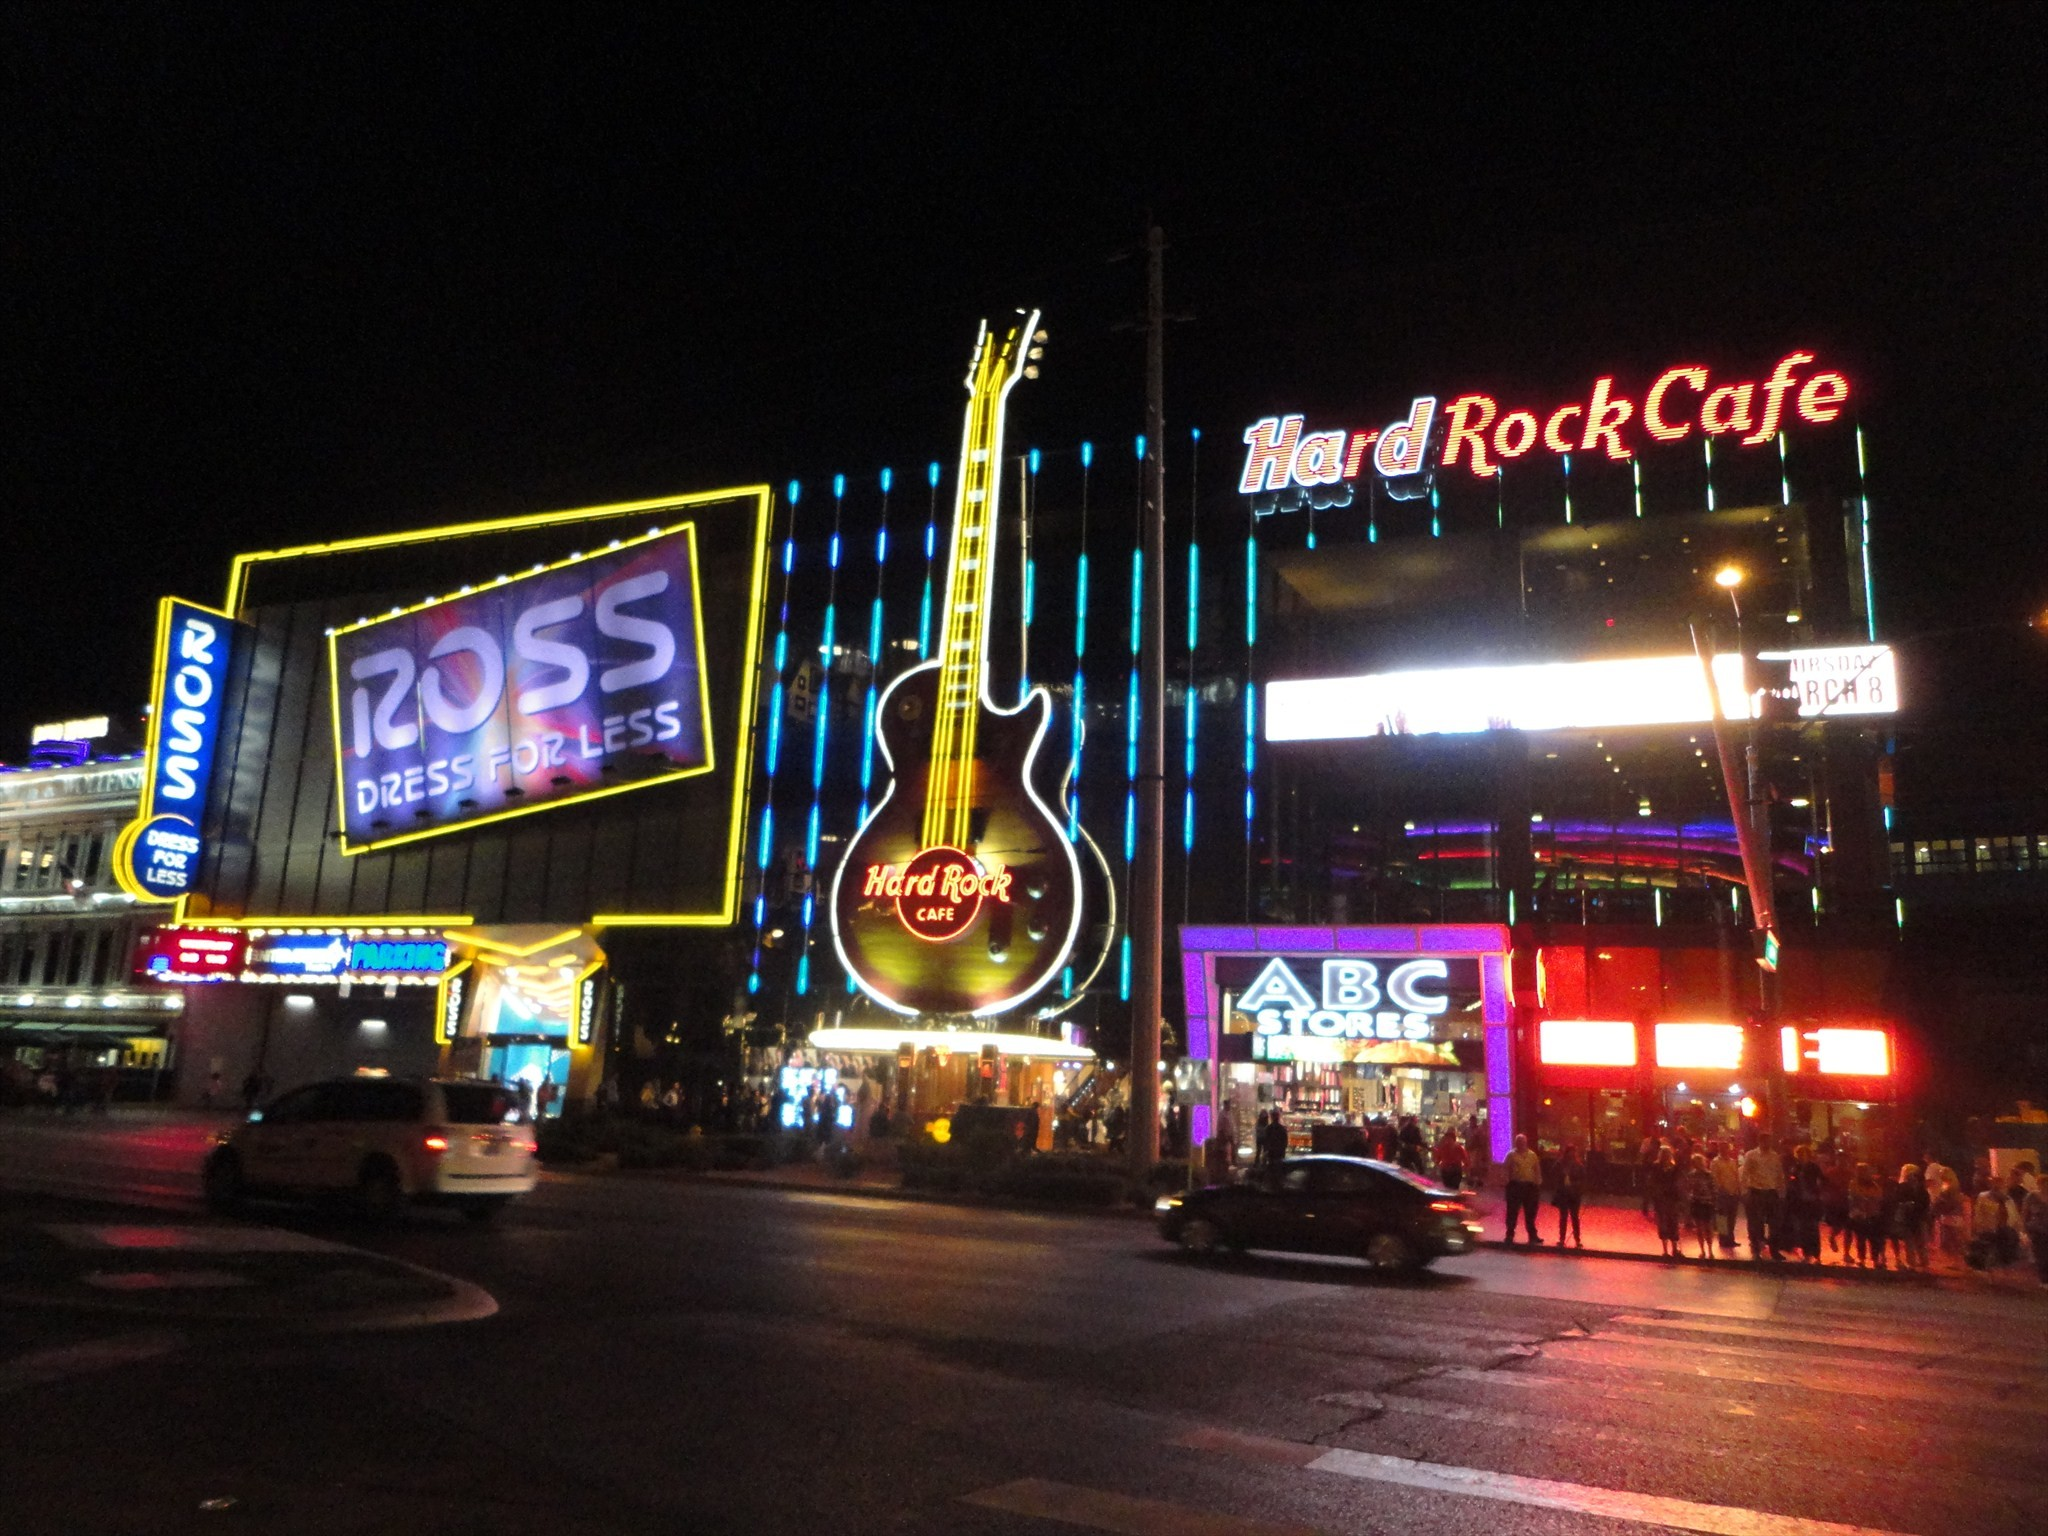 Las Vegas Hard Rock